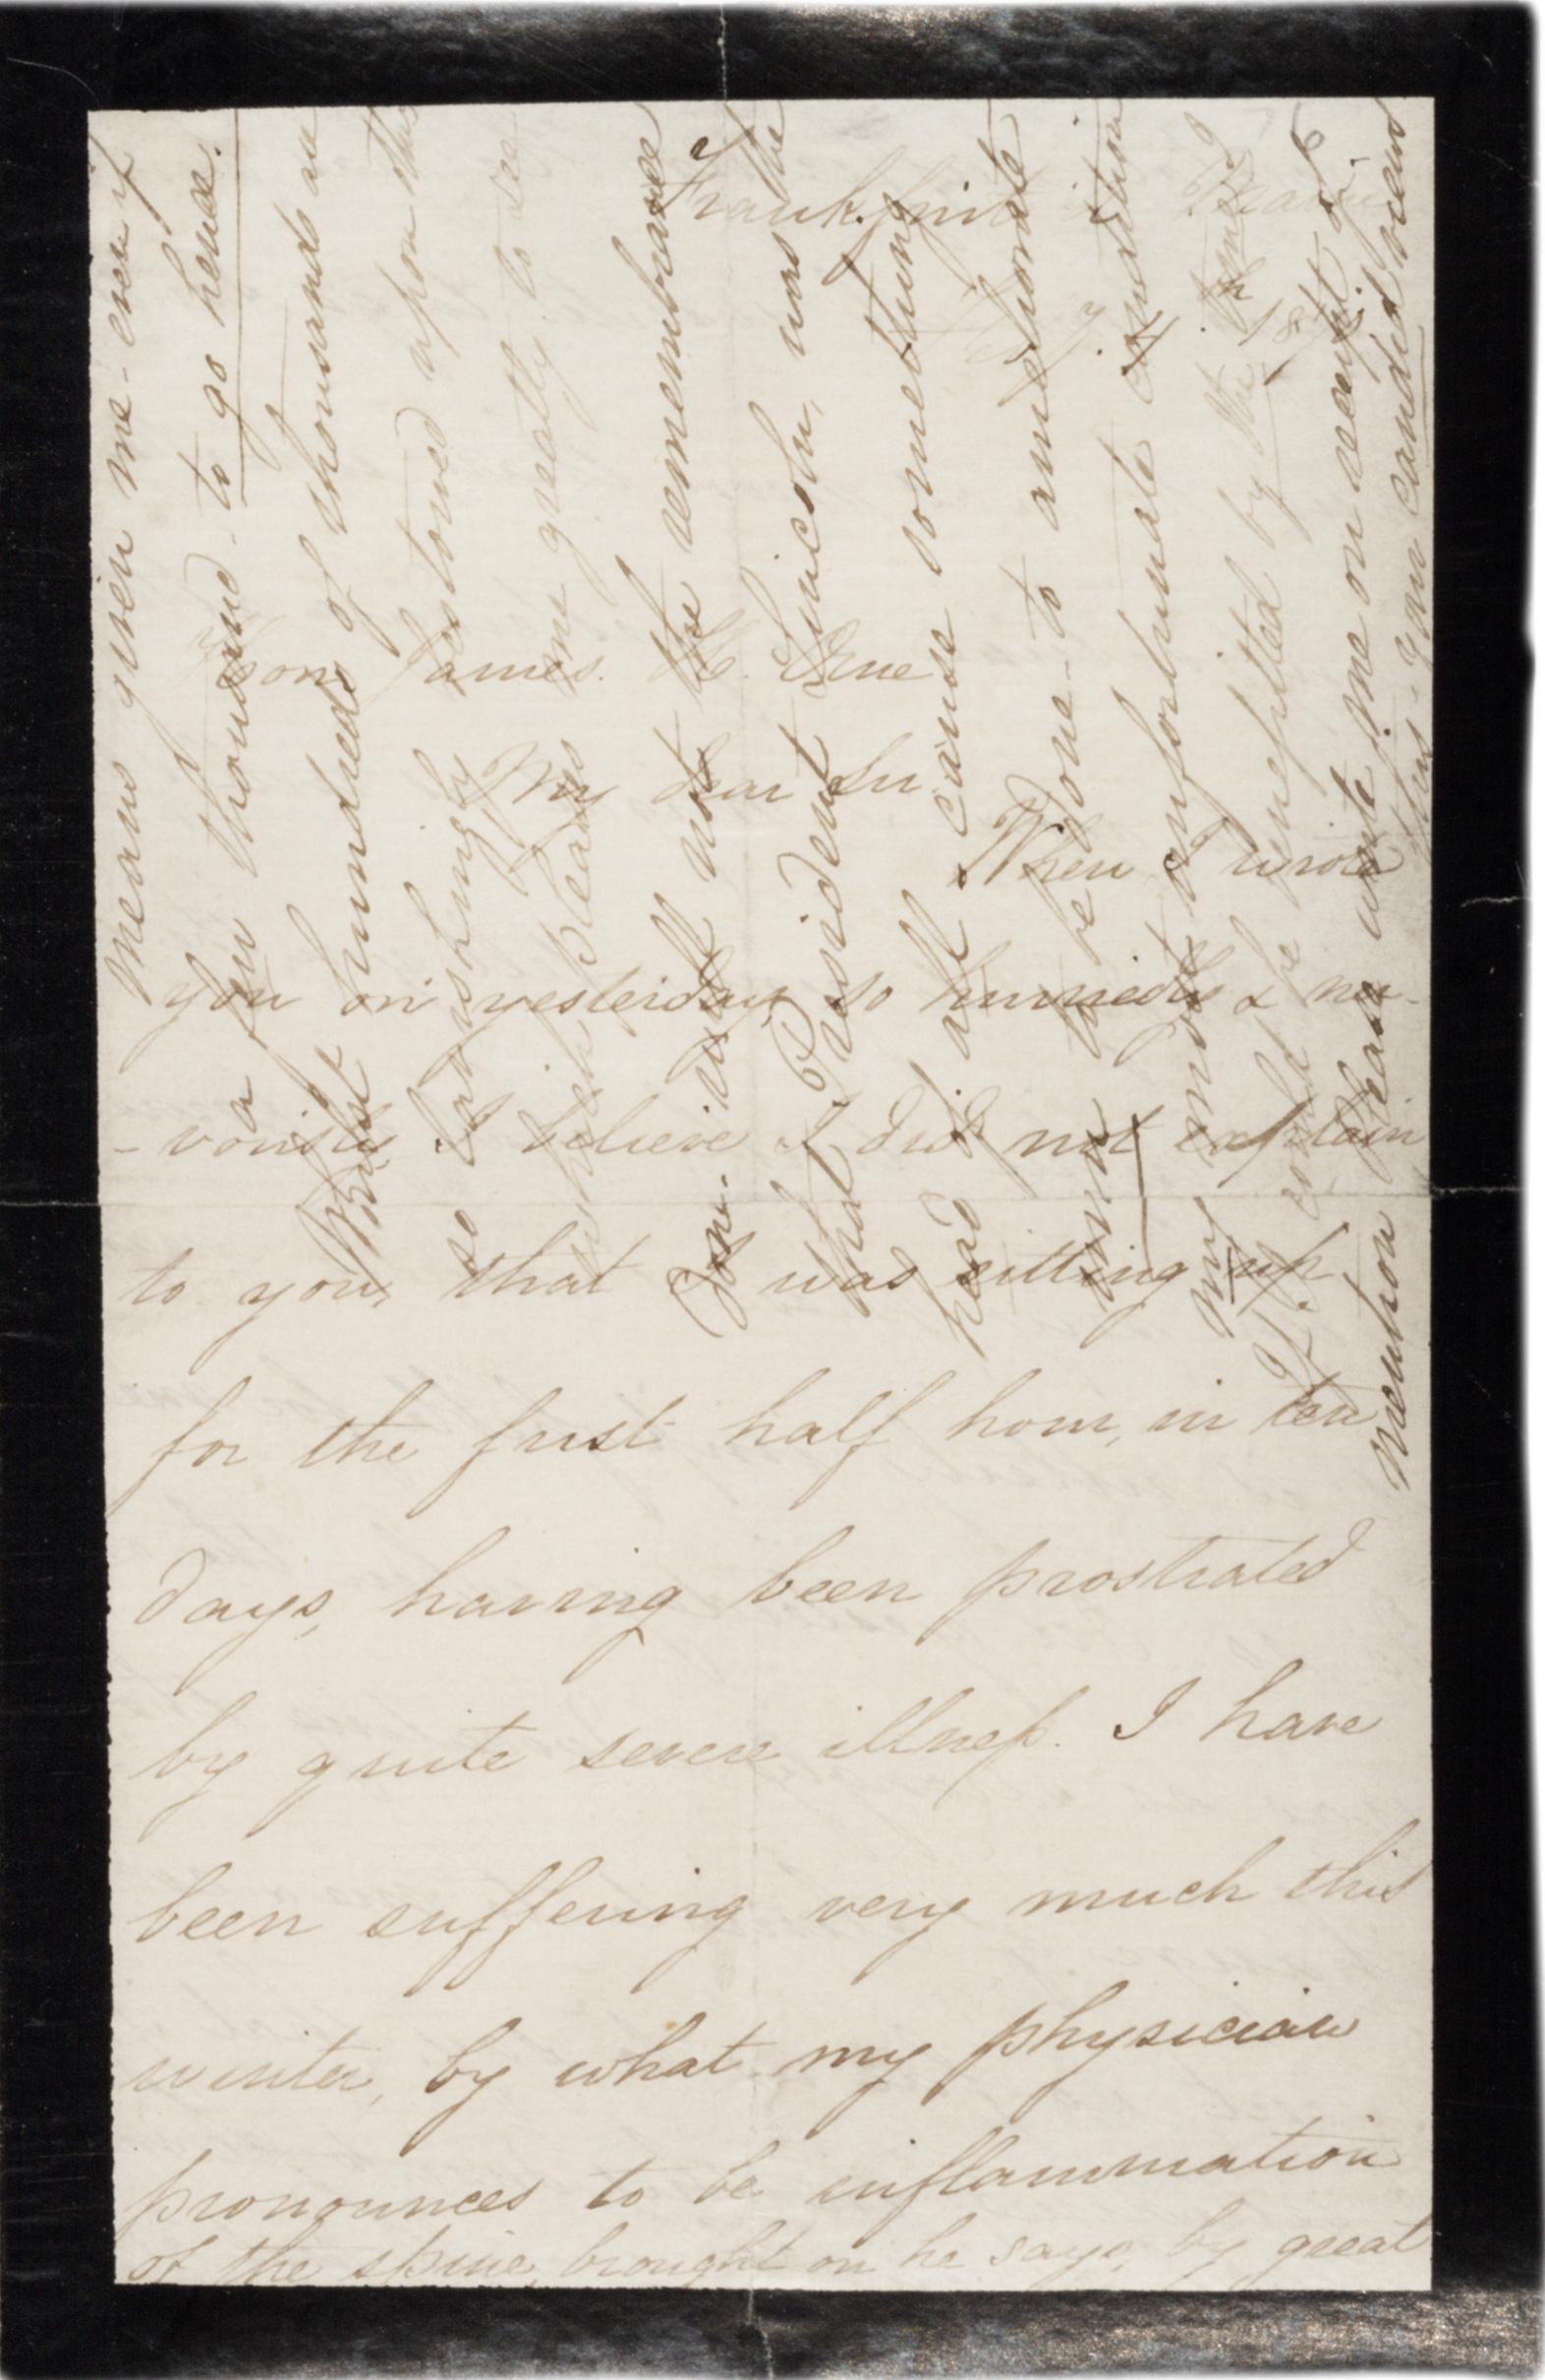 Mary Todd Lincoln to James Orne, February 4, 1870. (Gilder Lehrman Collection)